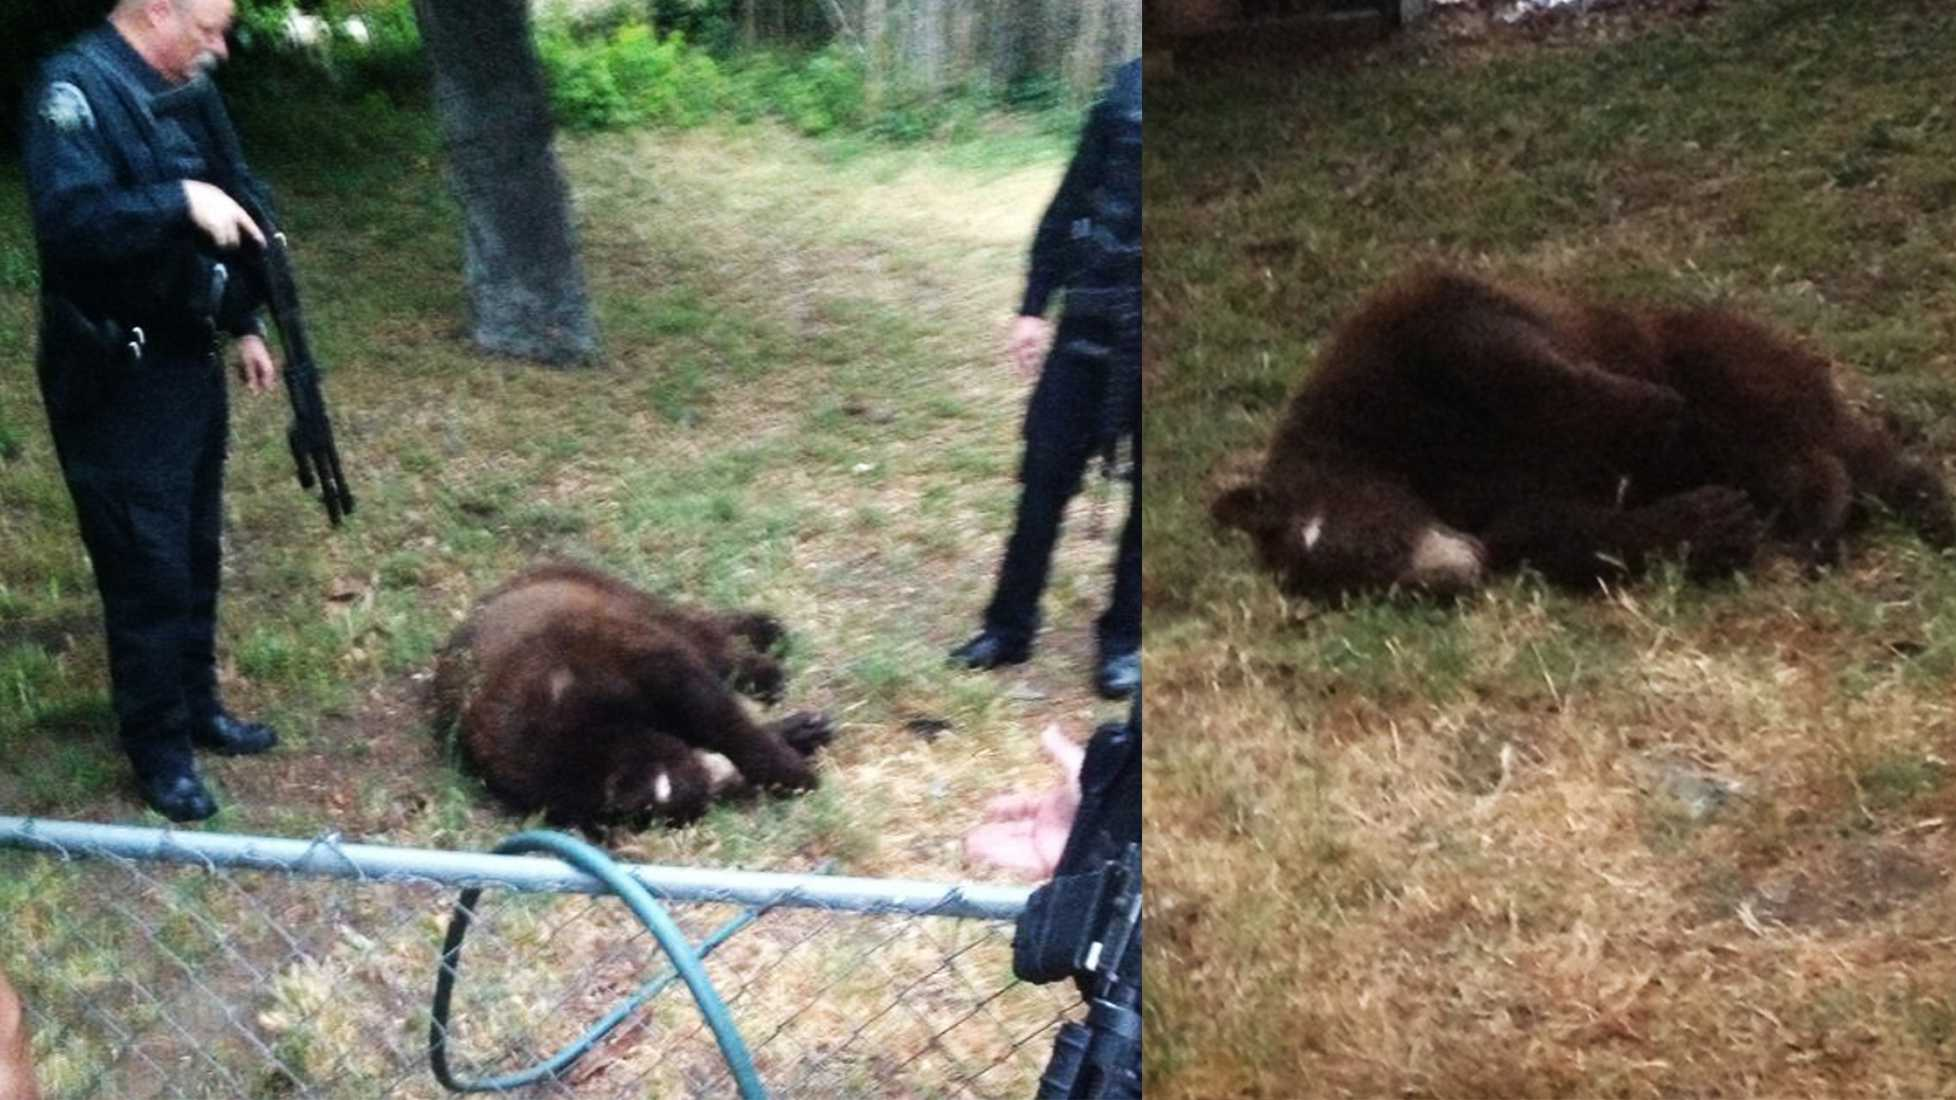 Jake Kelley took photos of the black bear after it was killed by Seaside police on June 3, 2013.